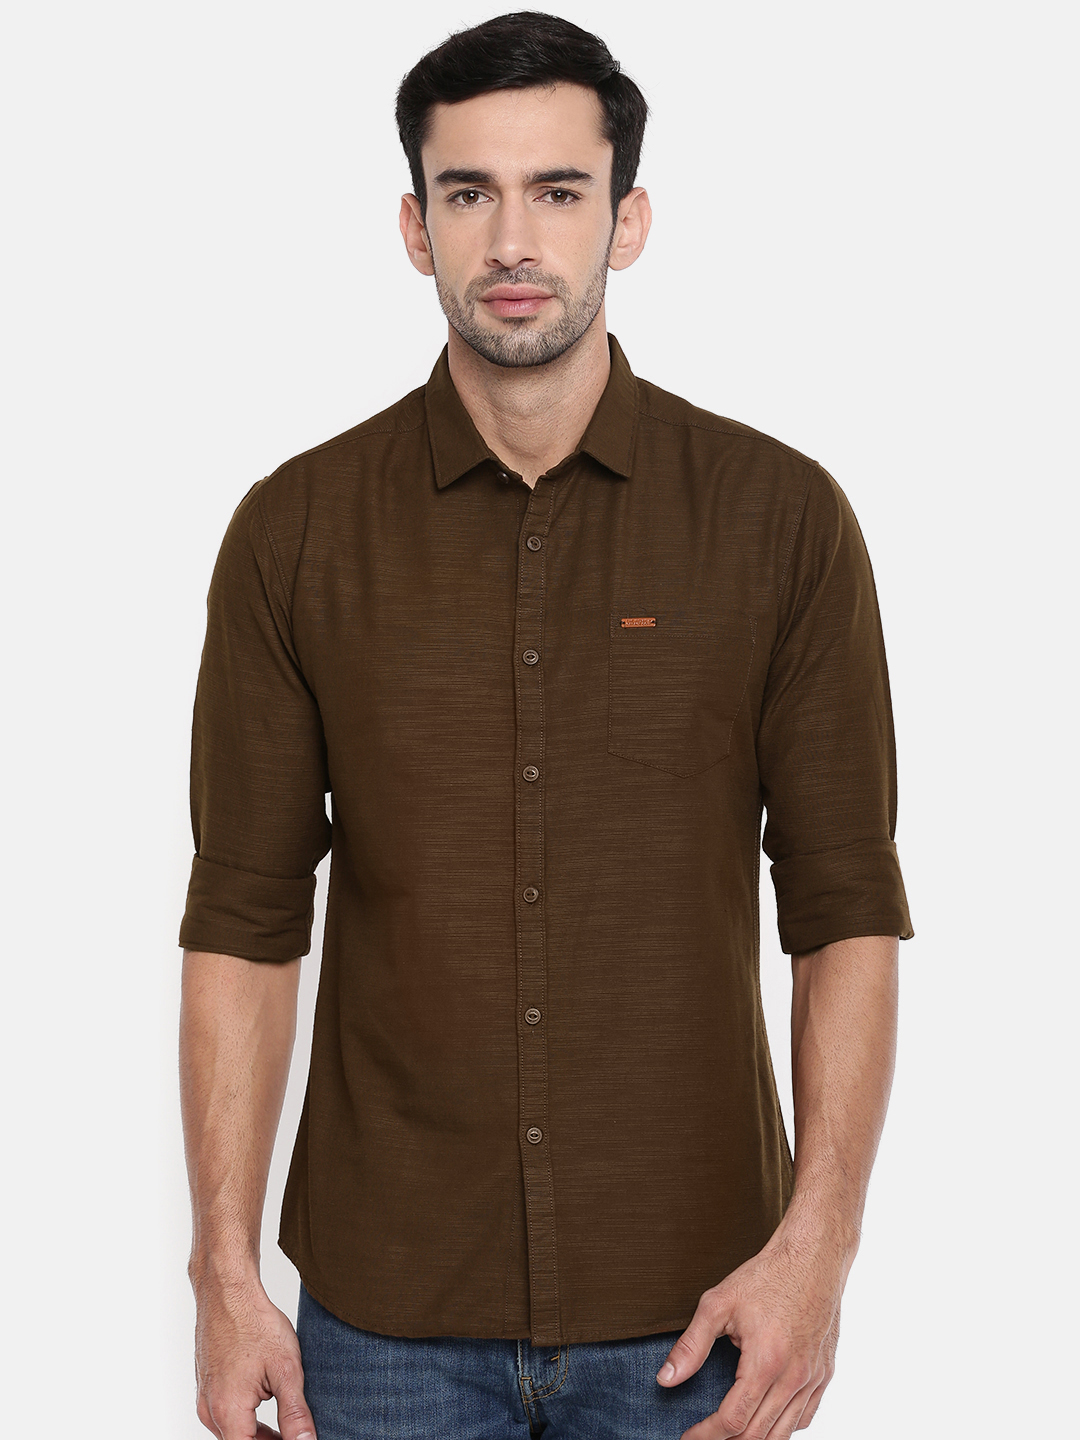 Brown shirts for men – How to best combine a brown shirt